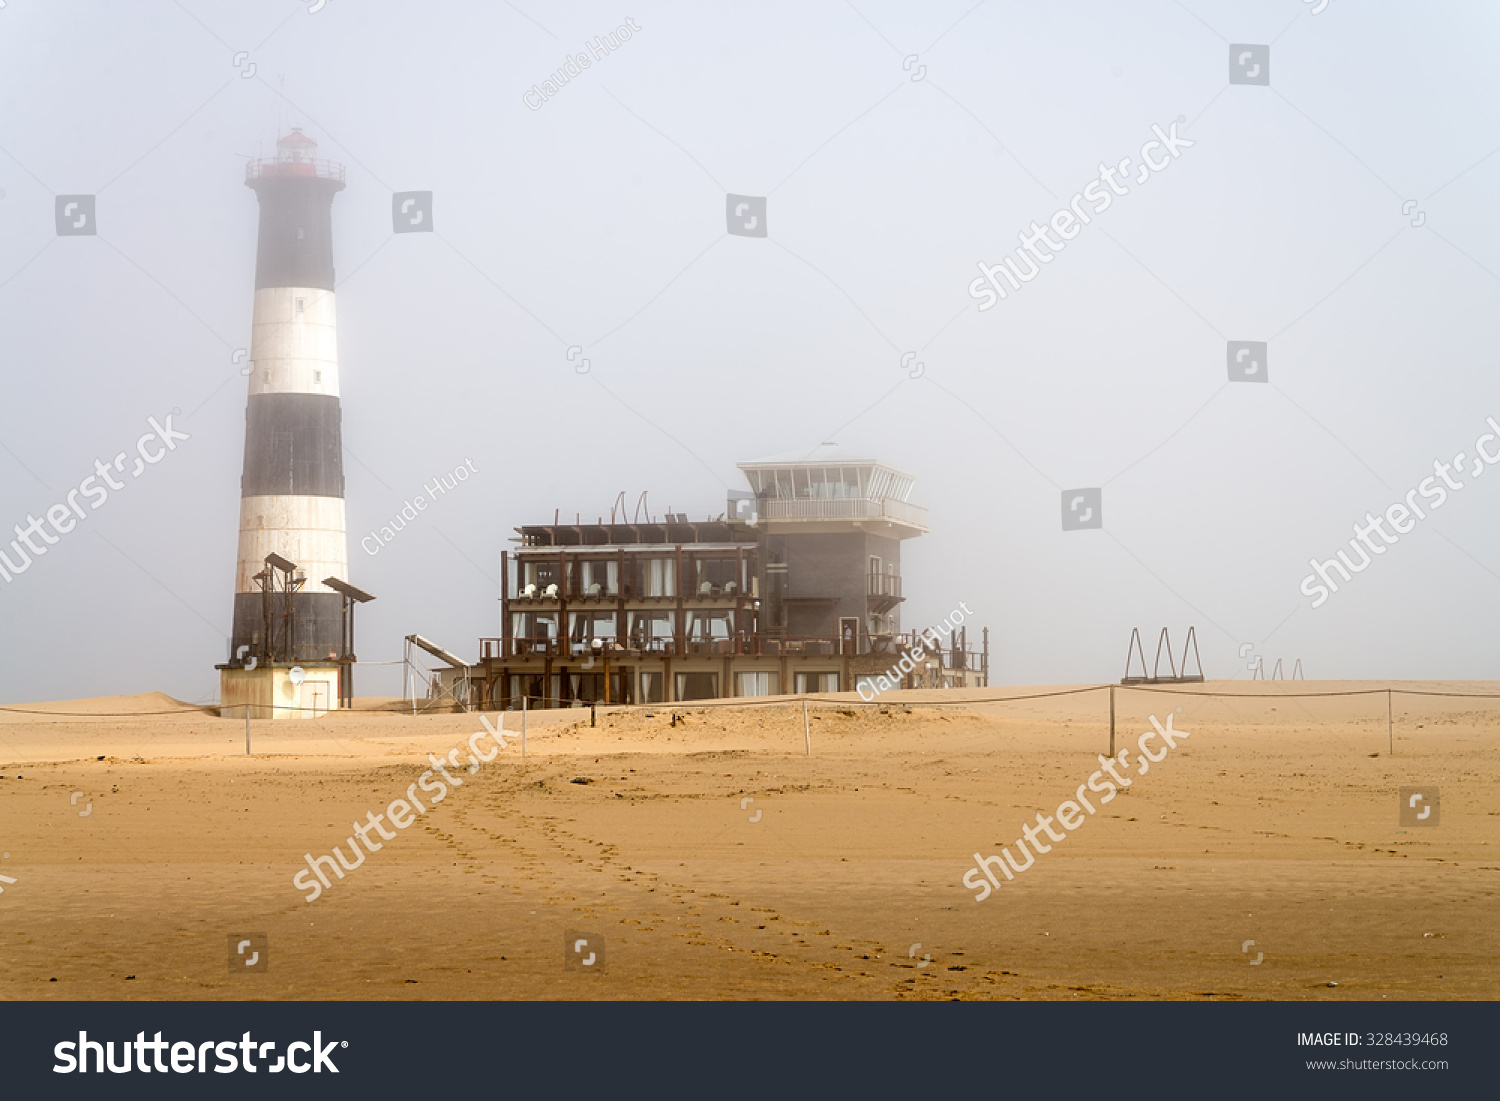 WALVIS BAY, NAMIBIA - SEPTEMBER 3, 2015: Early morning view of Pelican Point Lodge and Lighthouse in the fog. It is situated on a remote peninsula on the Atlantic Ocean near the town of Walvis Bay.